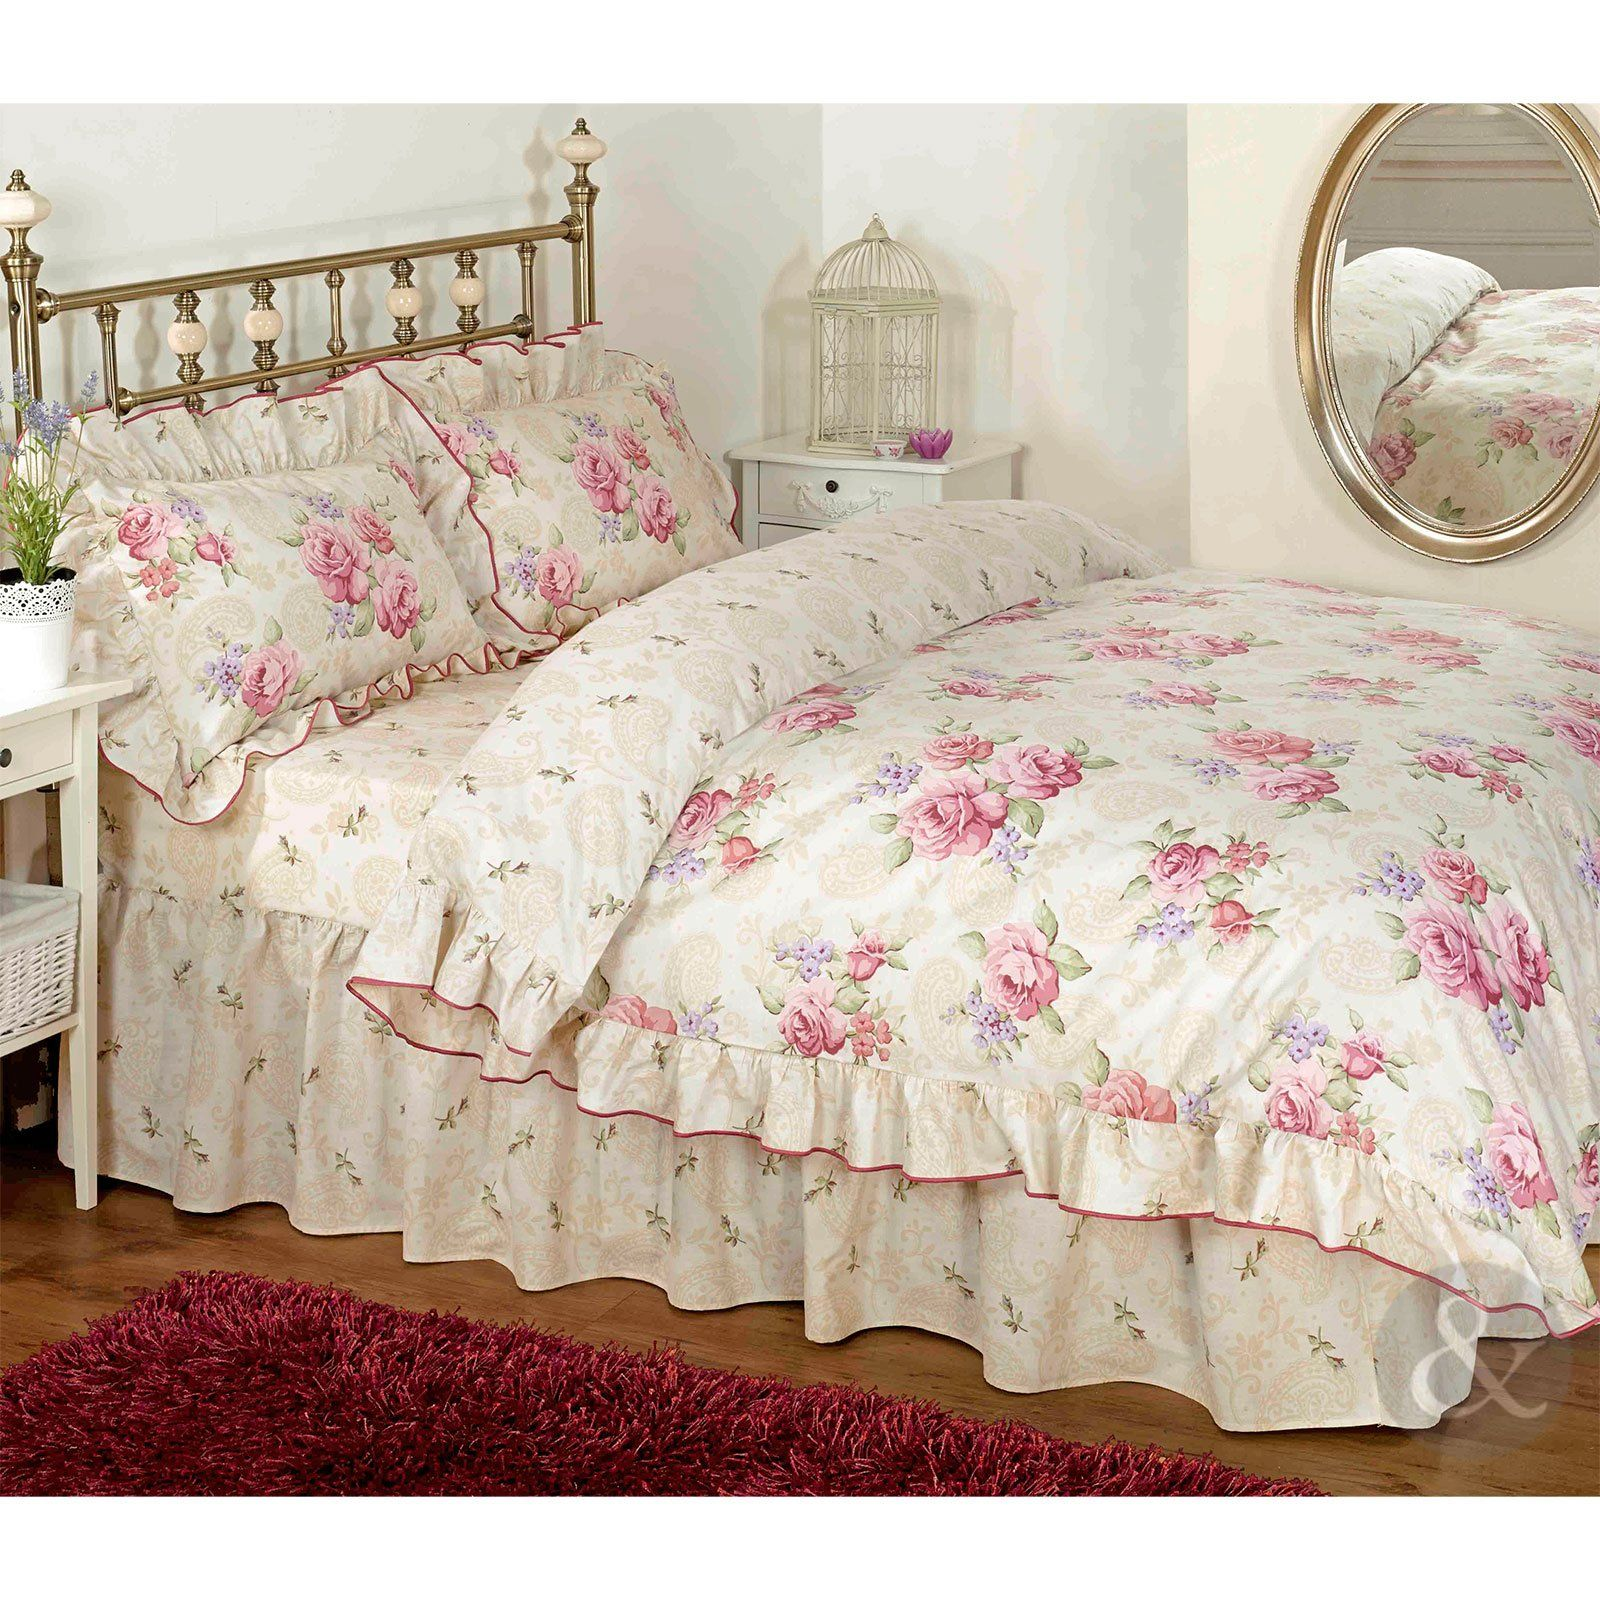 vintage floral r schen bettw sche creme beige rosa bettw sche set kissenbezug parent pink. Black Bedroom Furniture Sets. Home Design Ideas